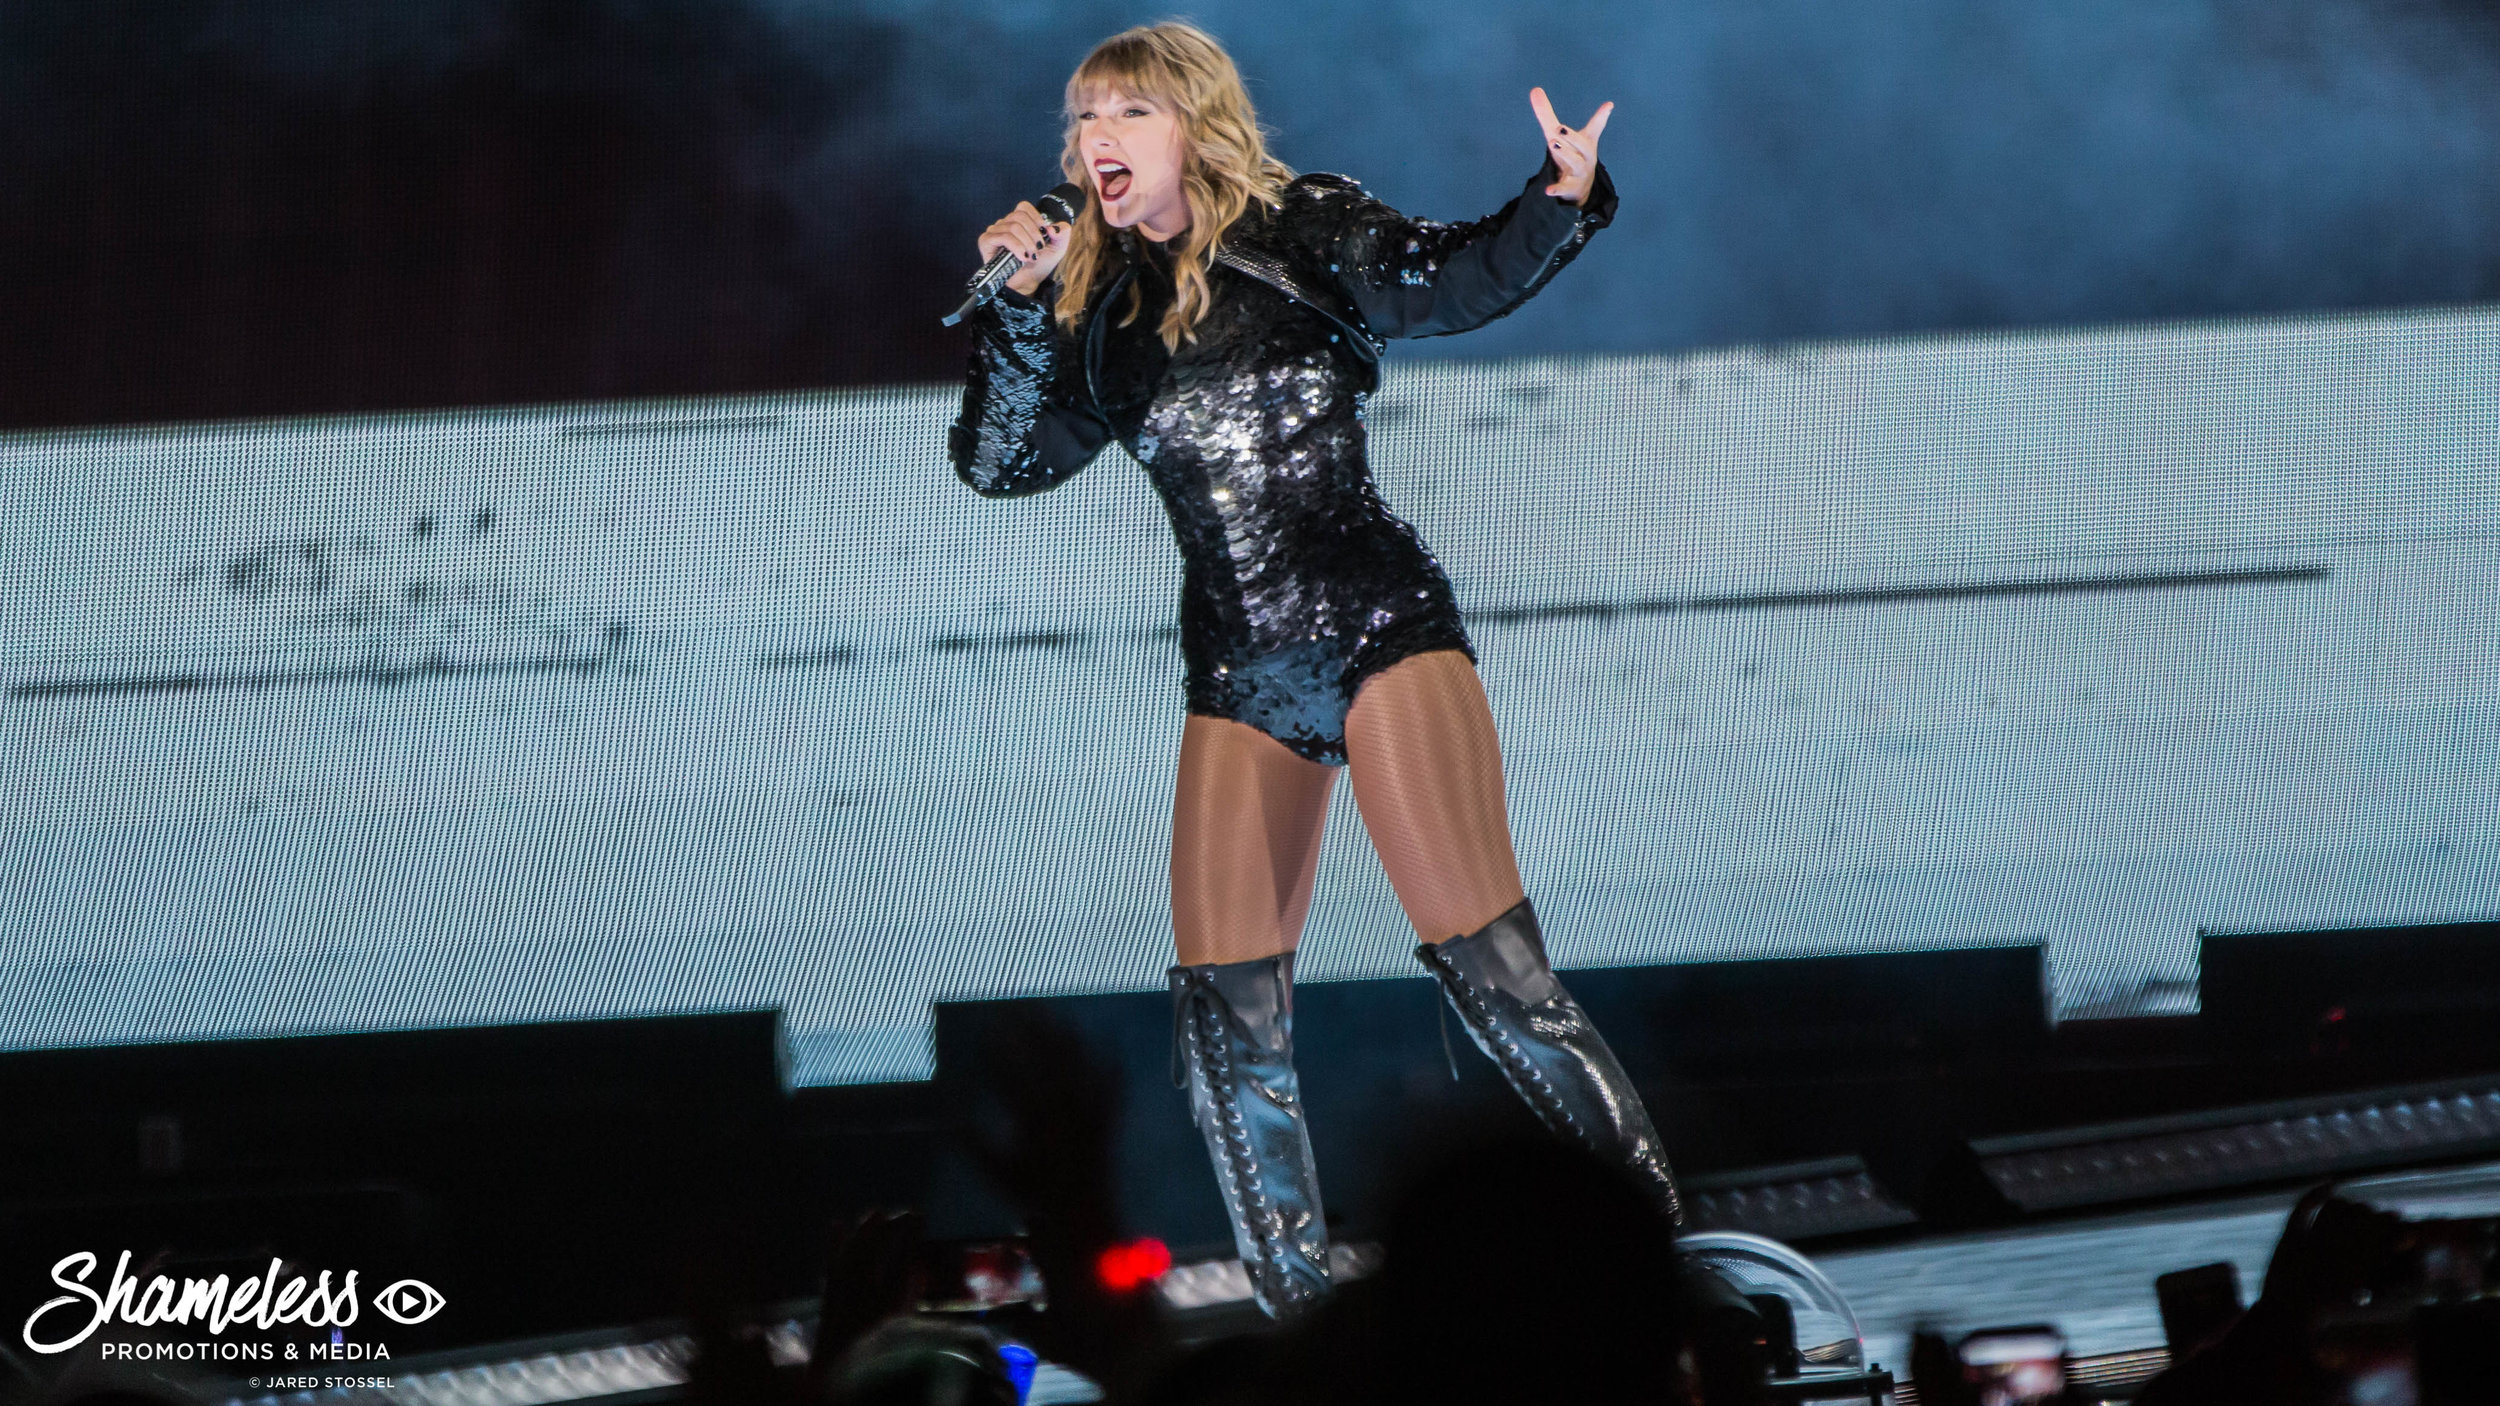 Taylor Swift performing at Levi's Stadium in Santa Clara, CA on the 'Reputation' World Tour. May 11th, 2018. Photo Credit: Jared Stossel.